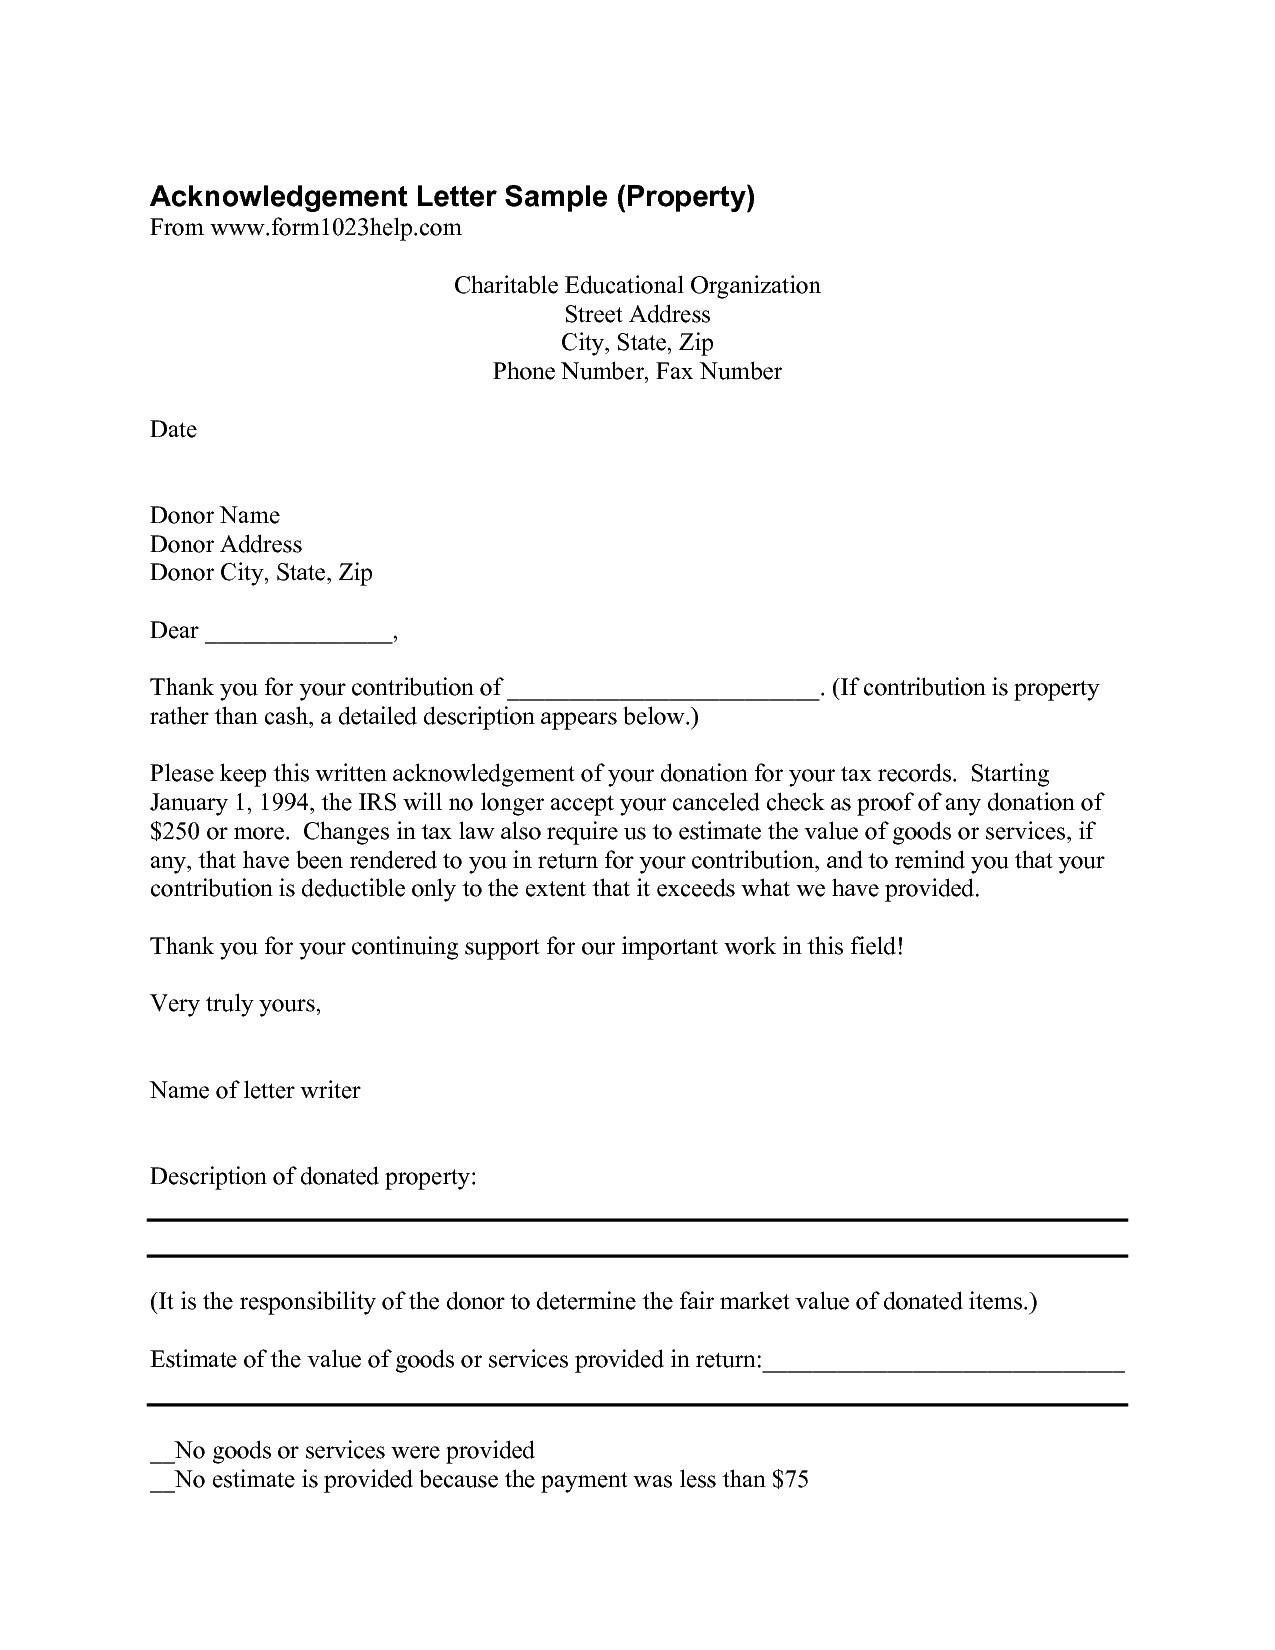 Personal Donation Letter Template - Business Donation Letter Template Valid Sample Fundraising Letters